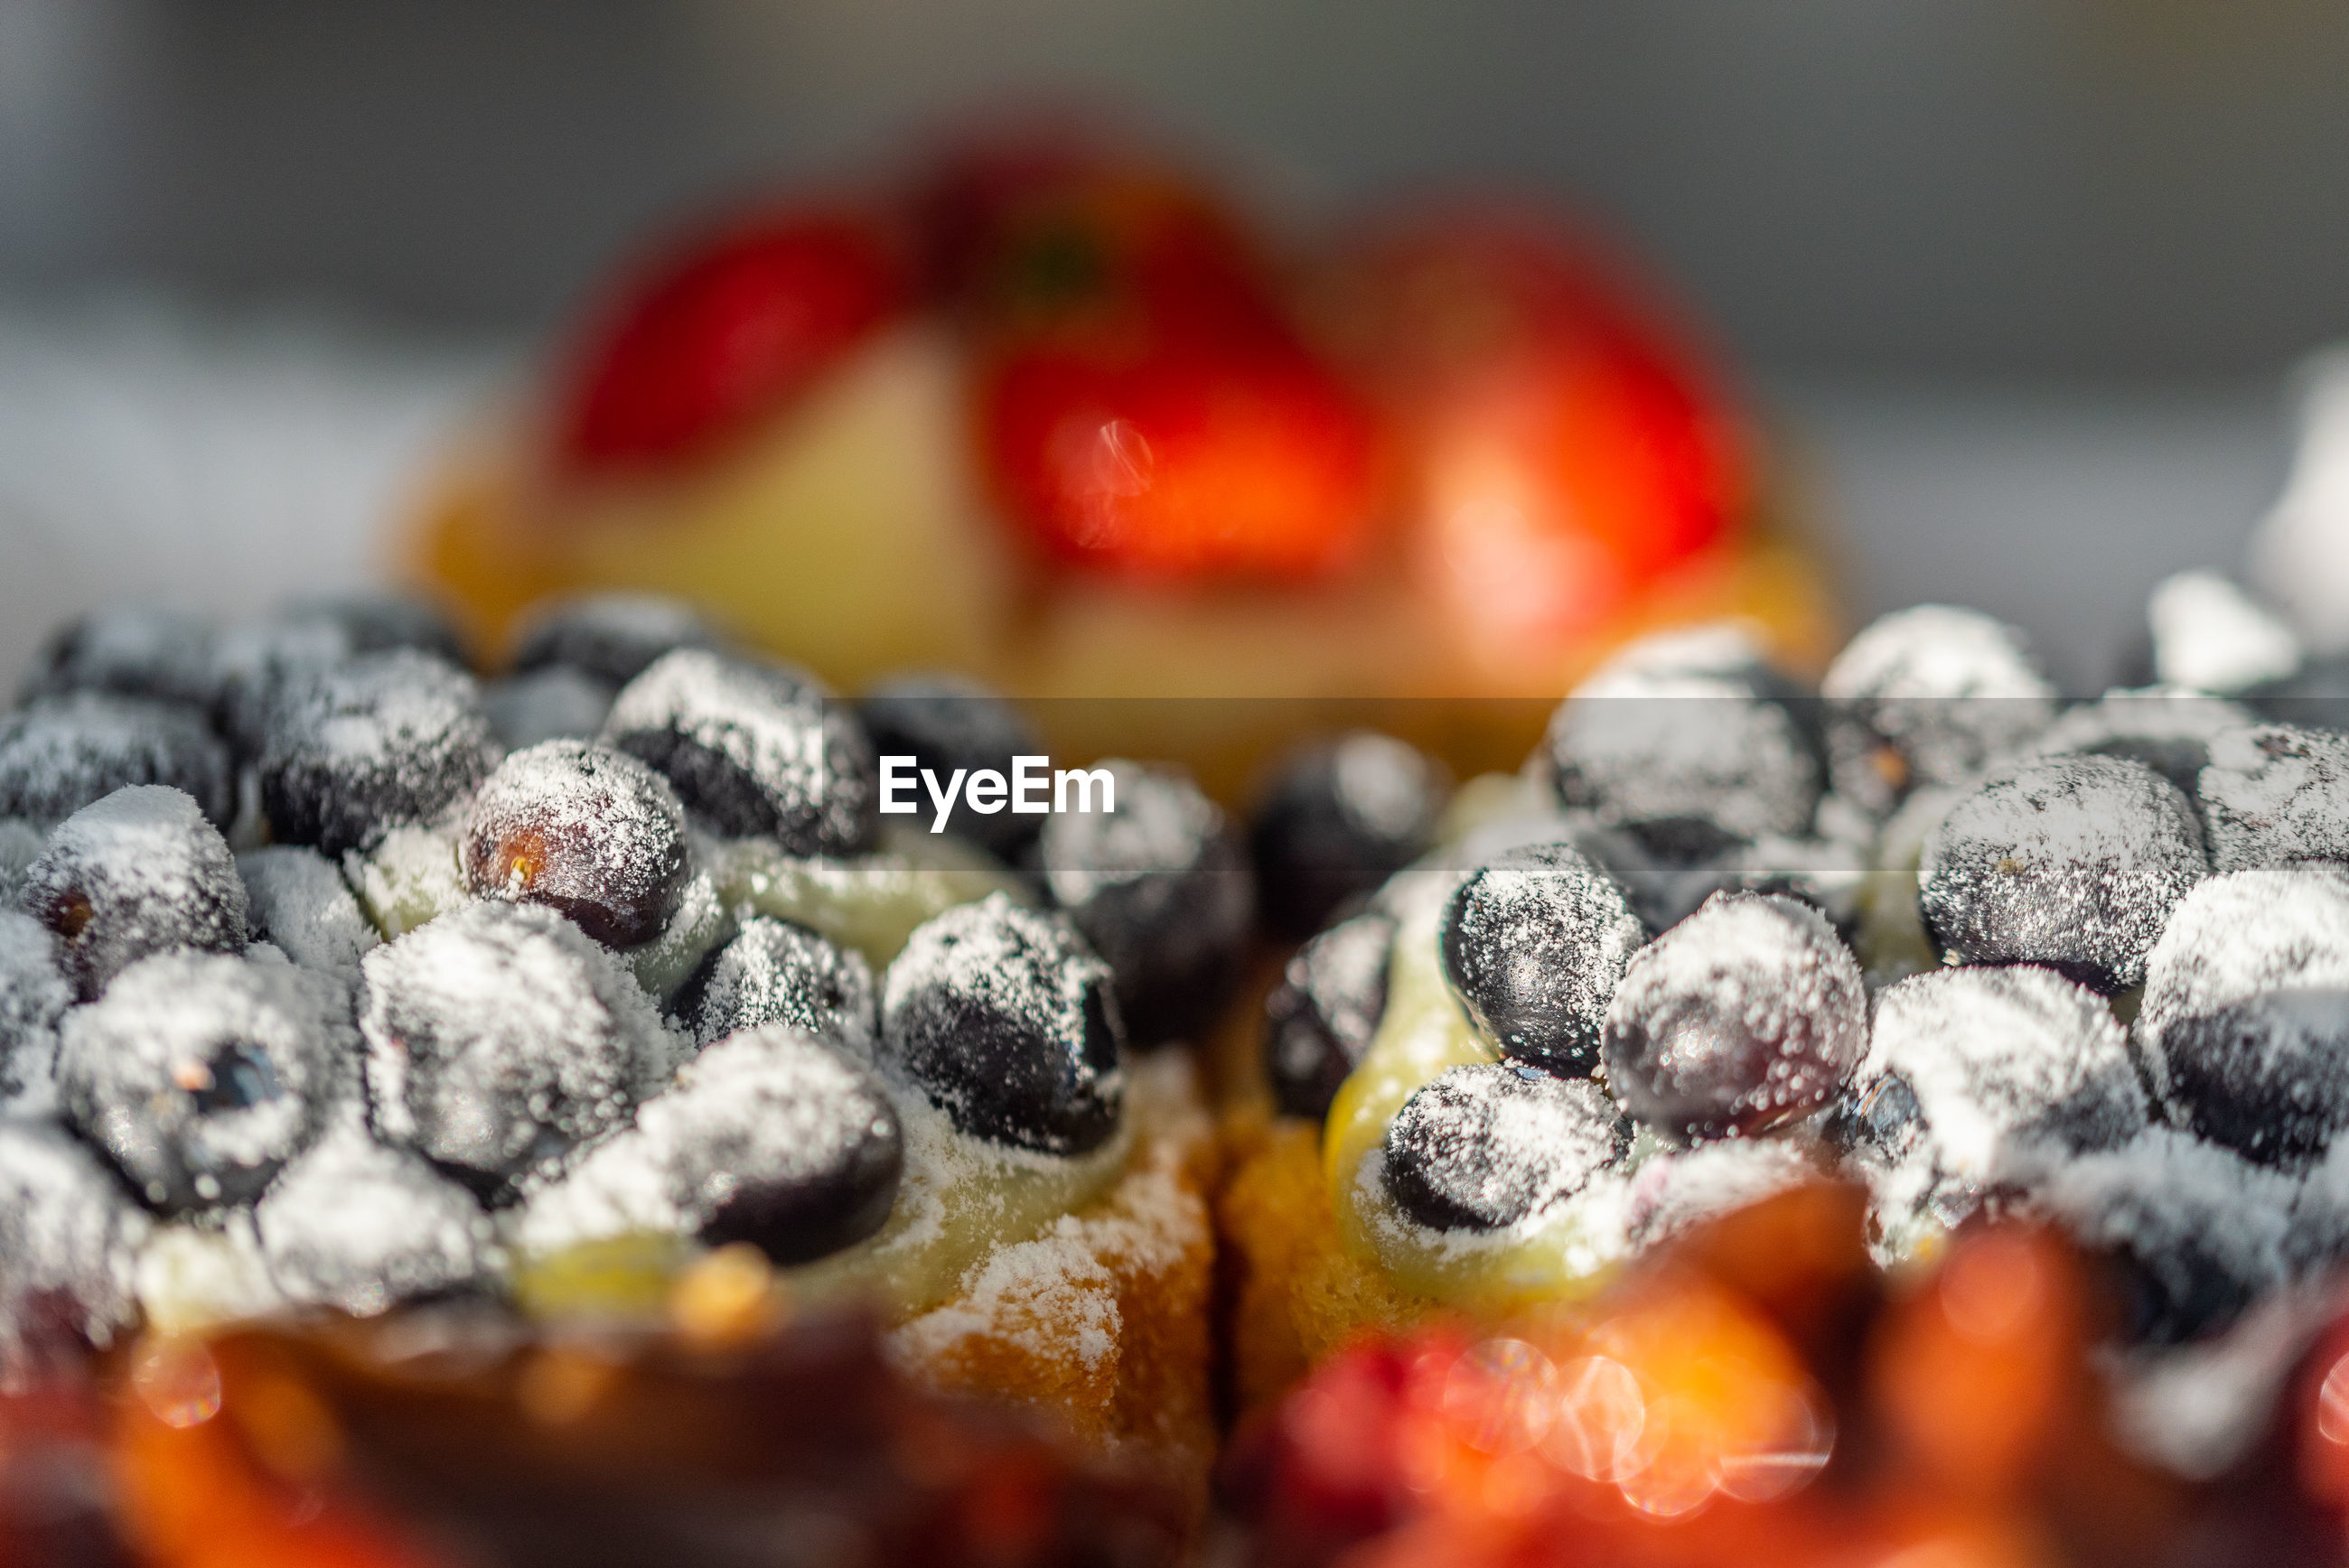 CLOSE-UP OF BERRIES ON CAKE